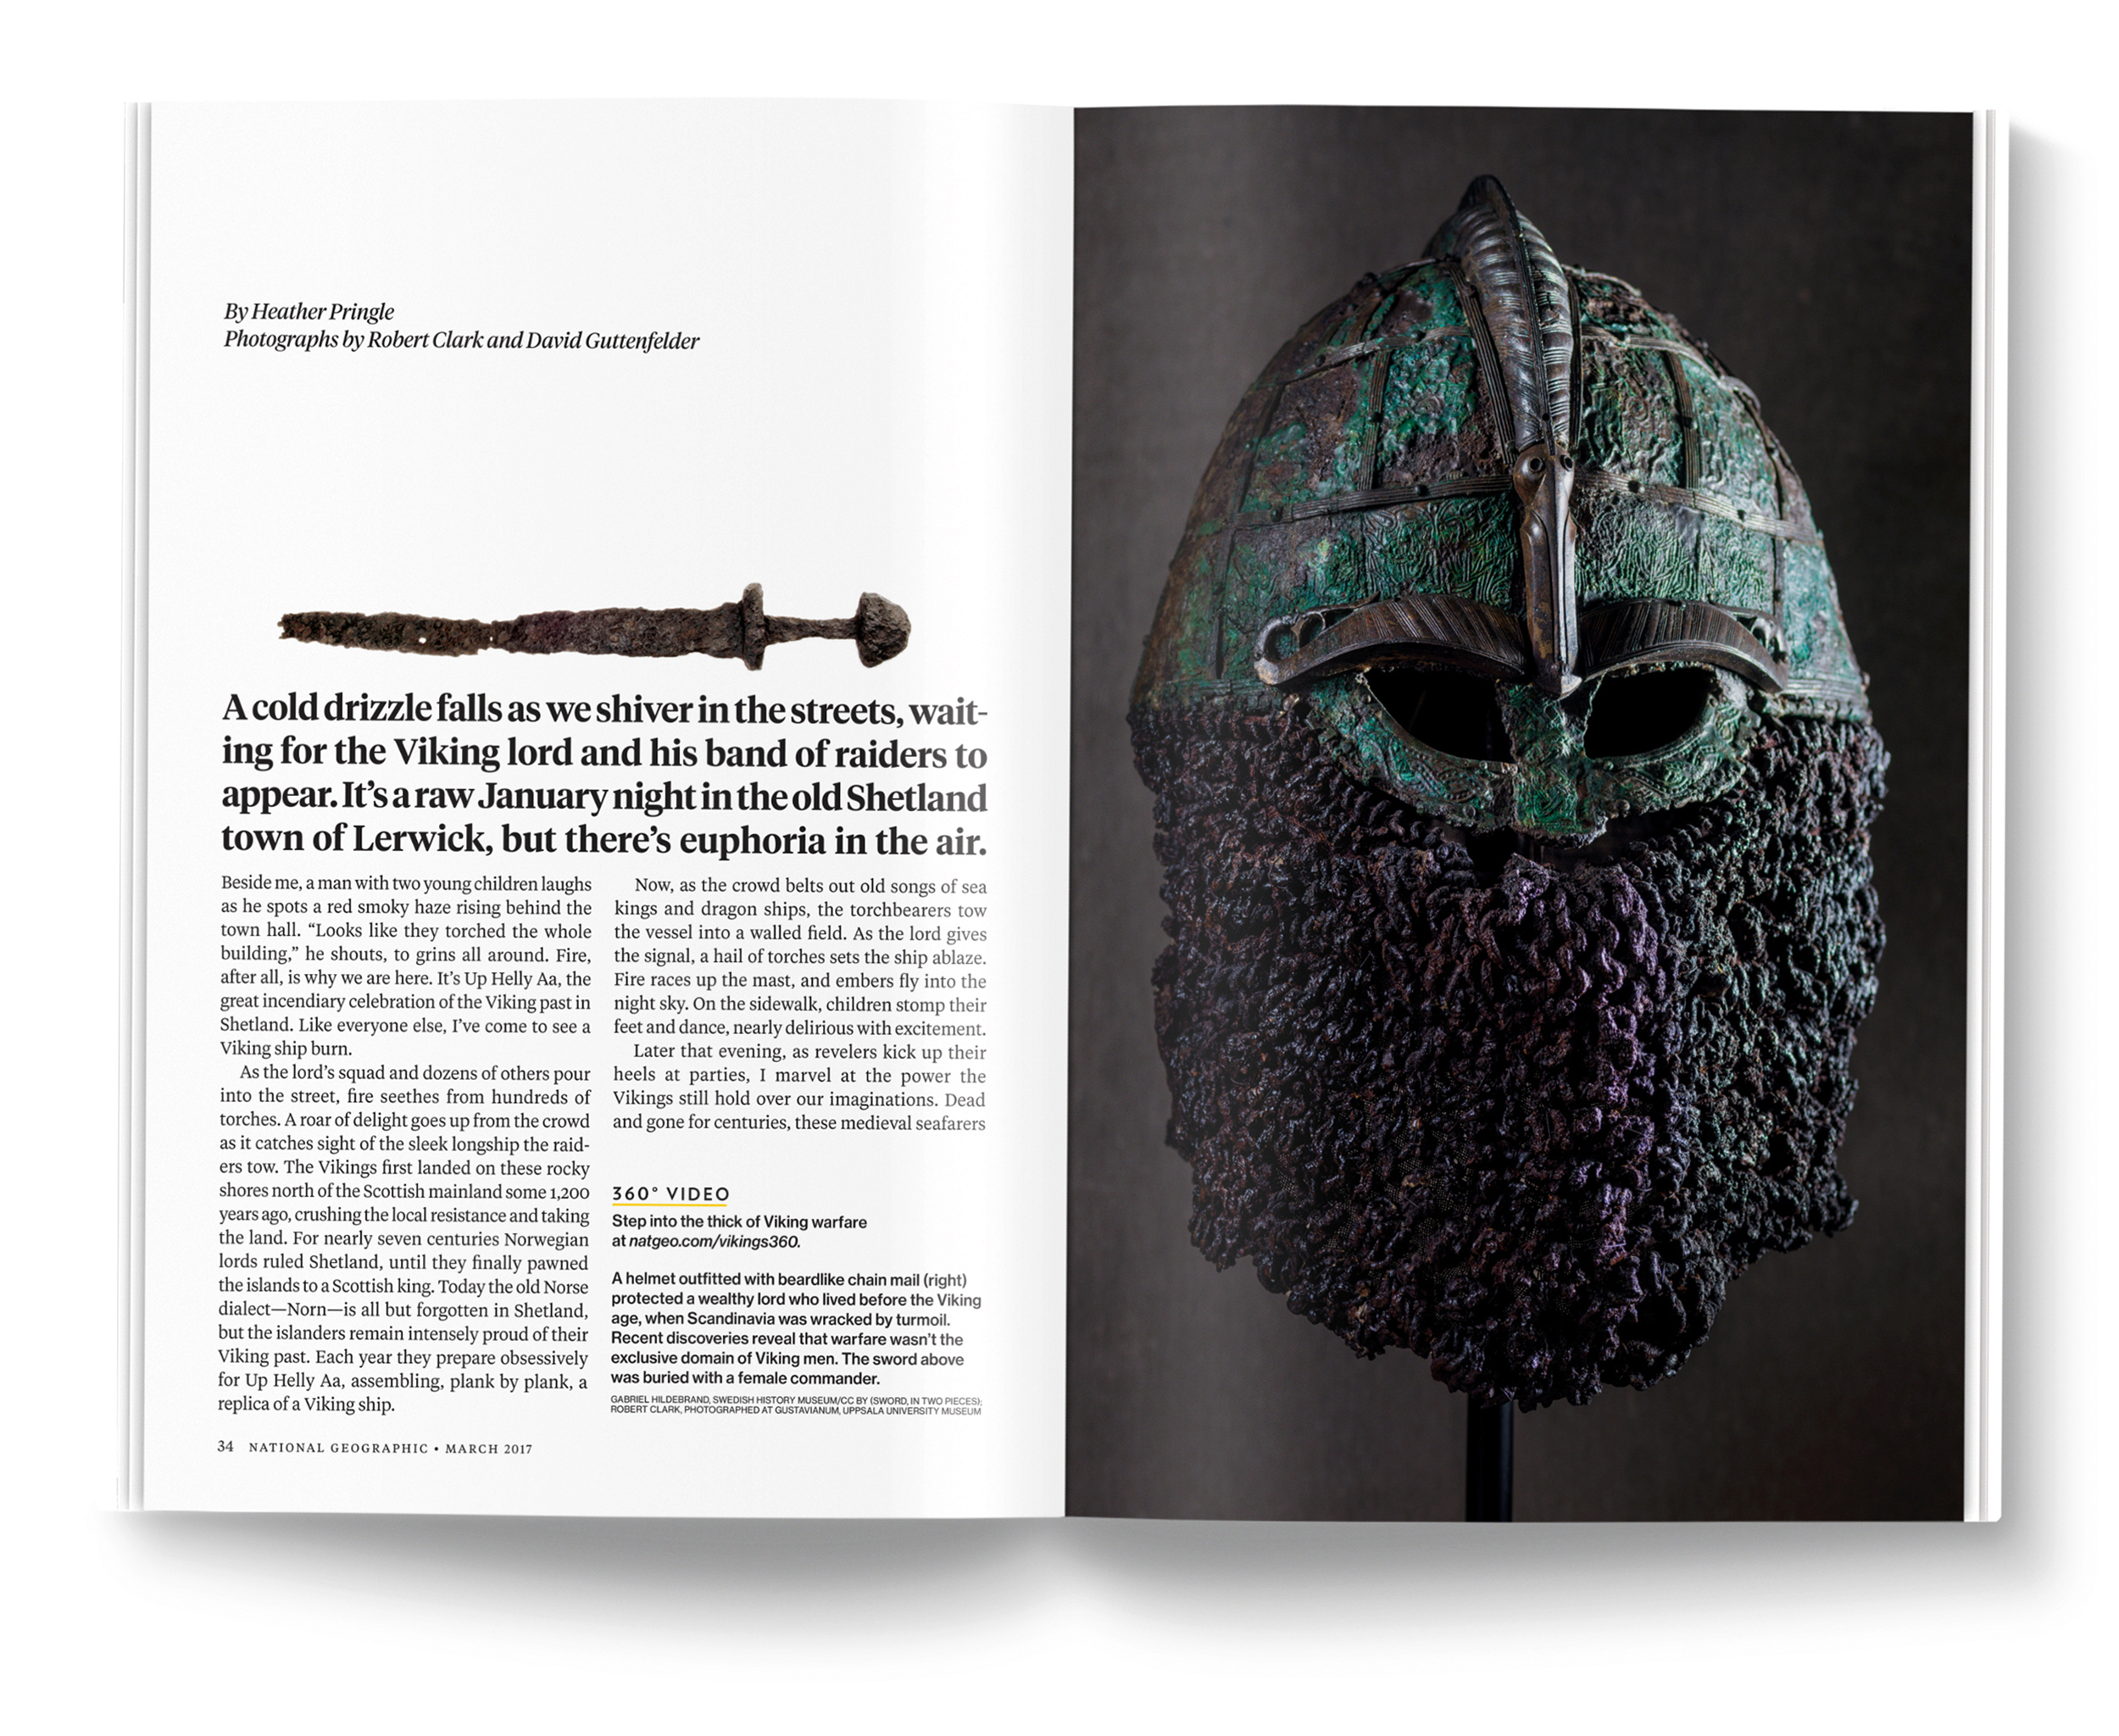 New Visions of the Vikings , photographed by  David Guttenfelder  and  Rob Clark .